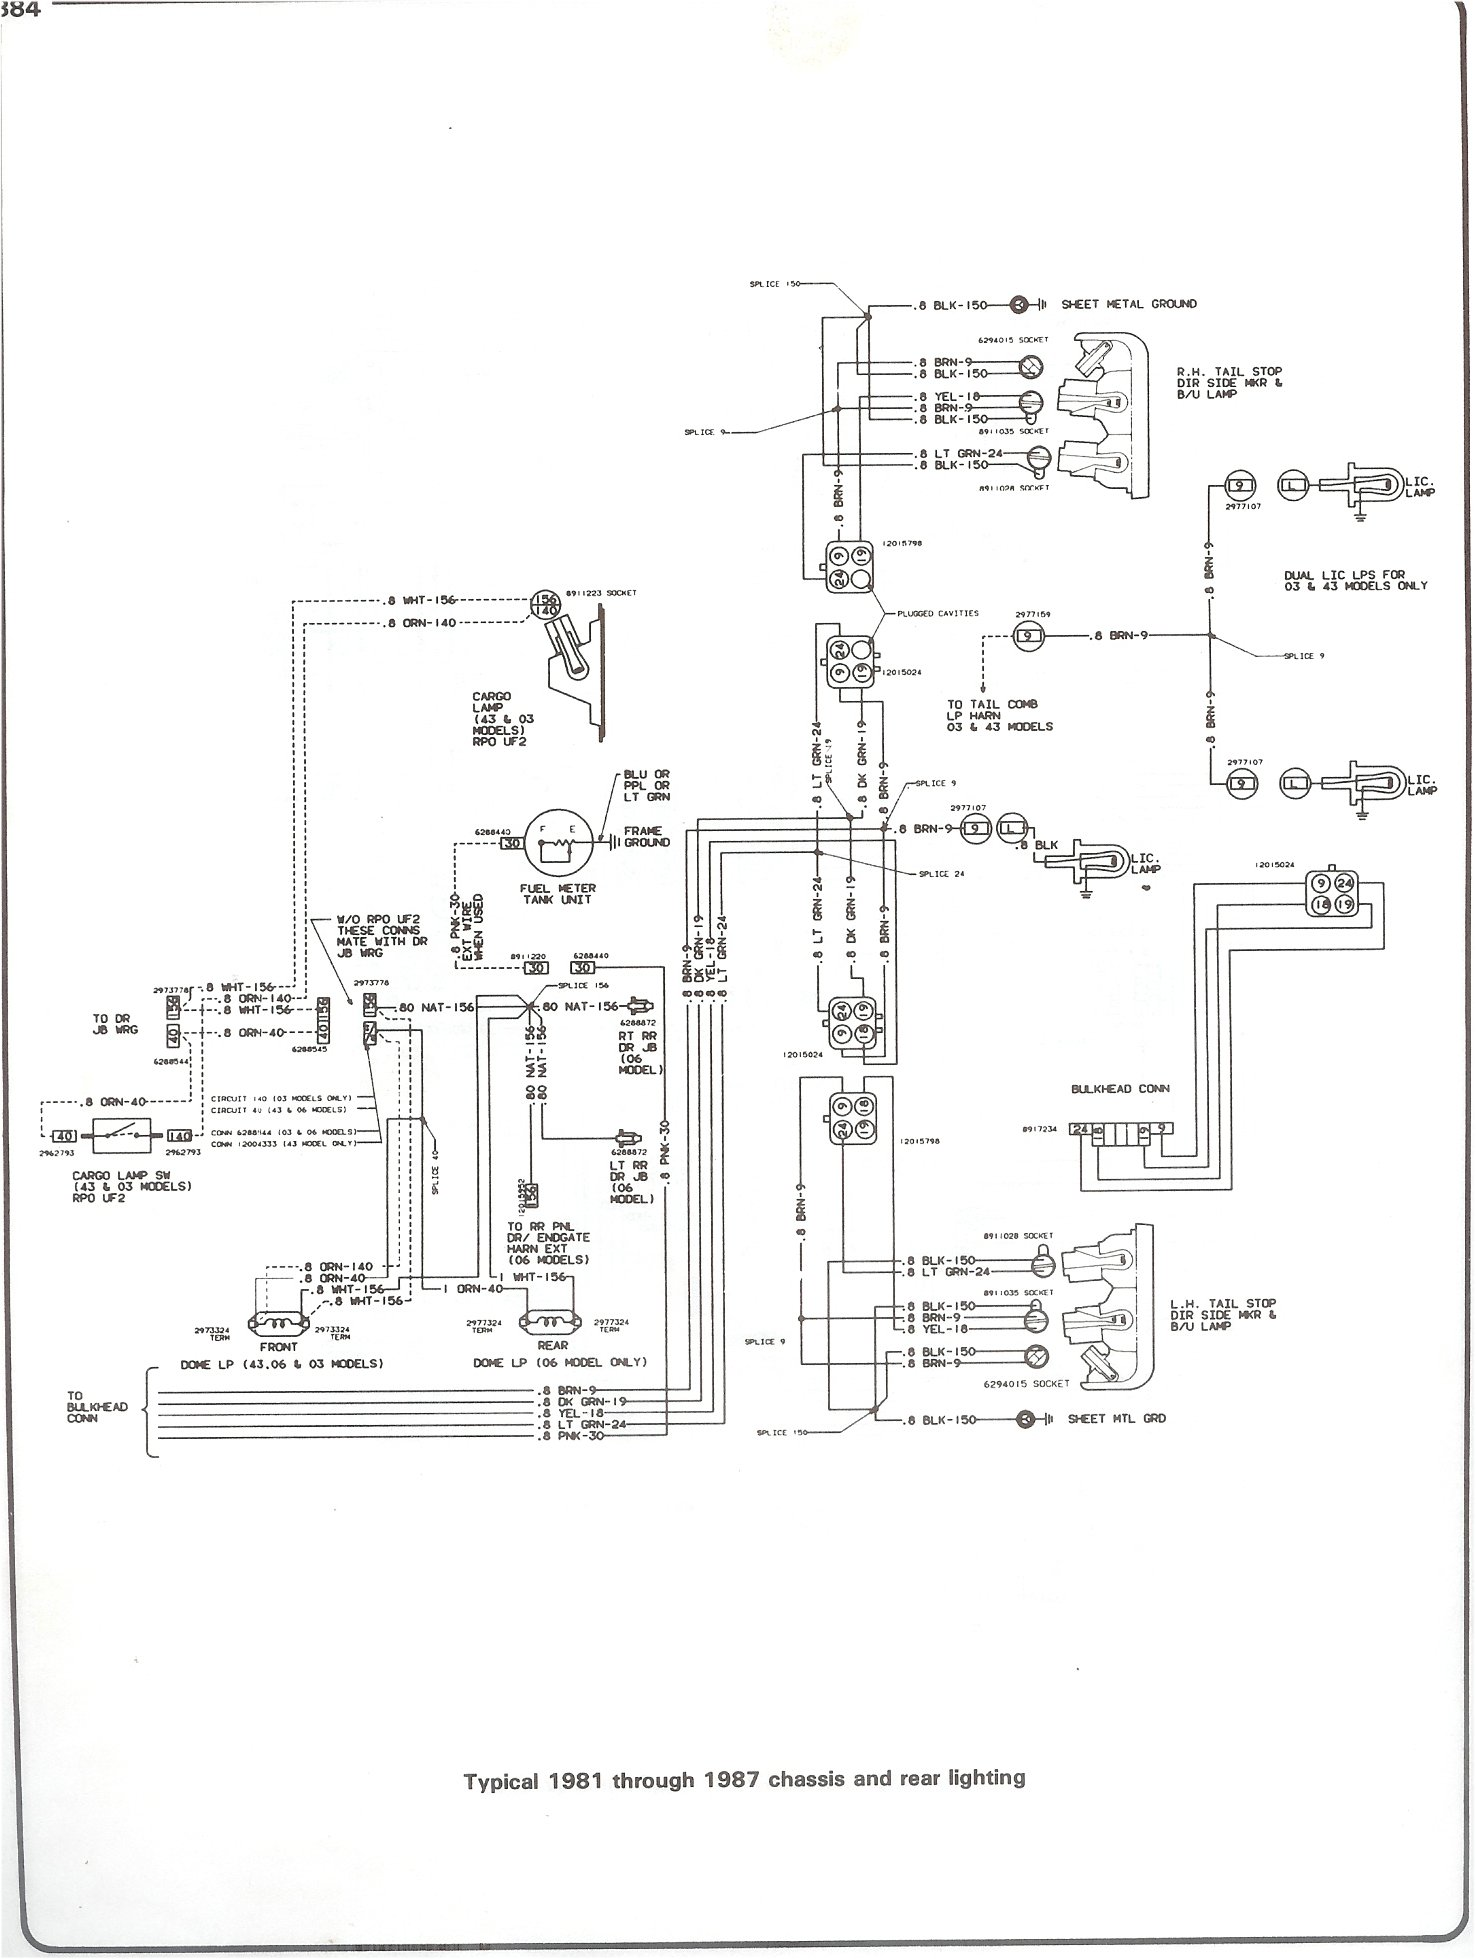 hight resolution of complete 73 87 wiring diagrams 2001 chevy truck wiring diagram 81 87 chassis and rear lighting